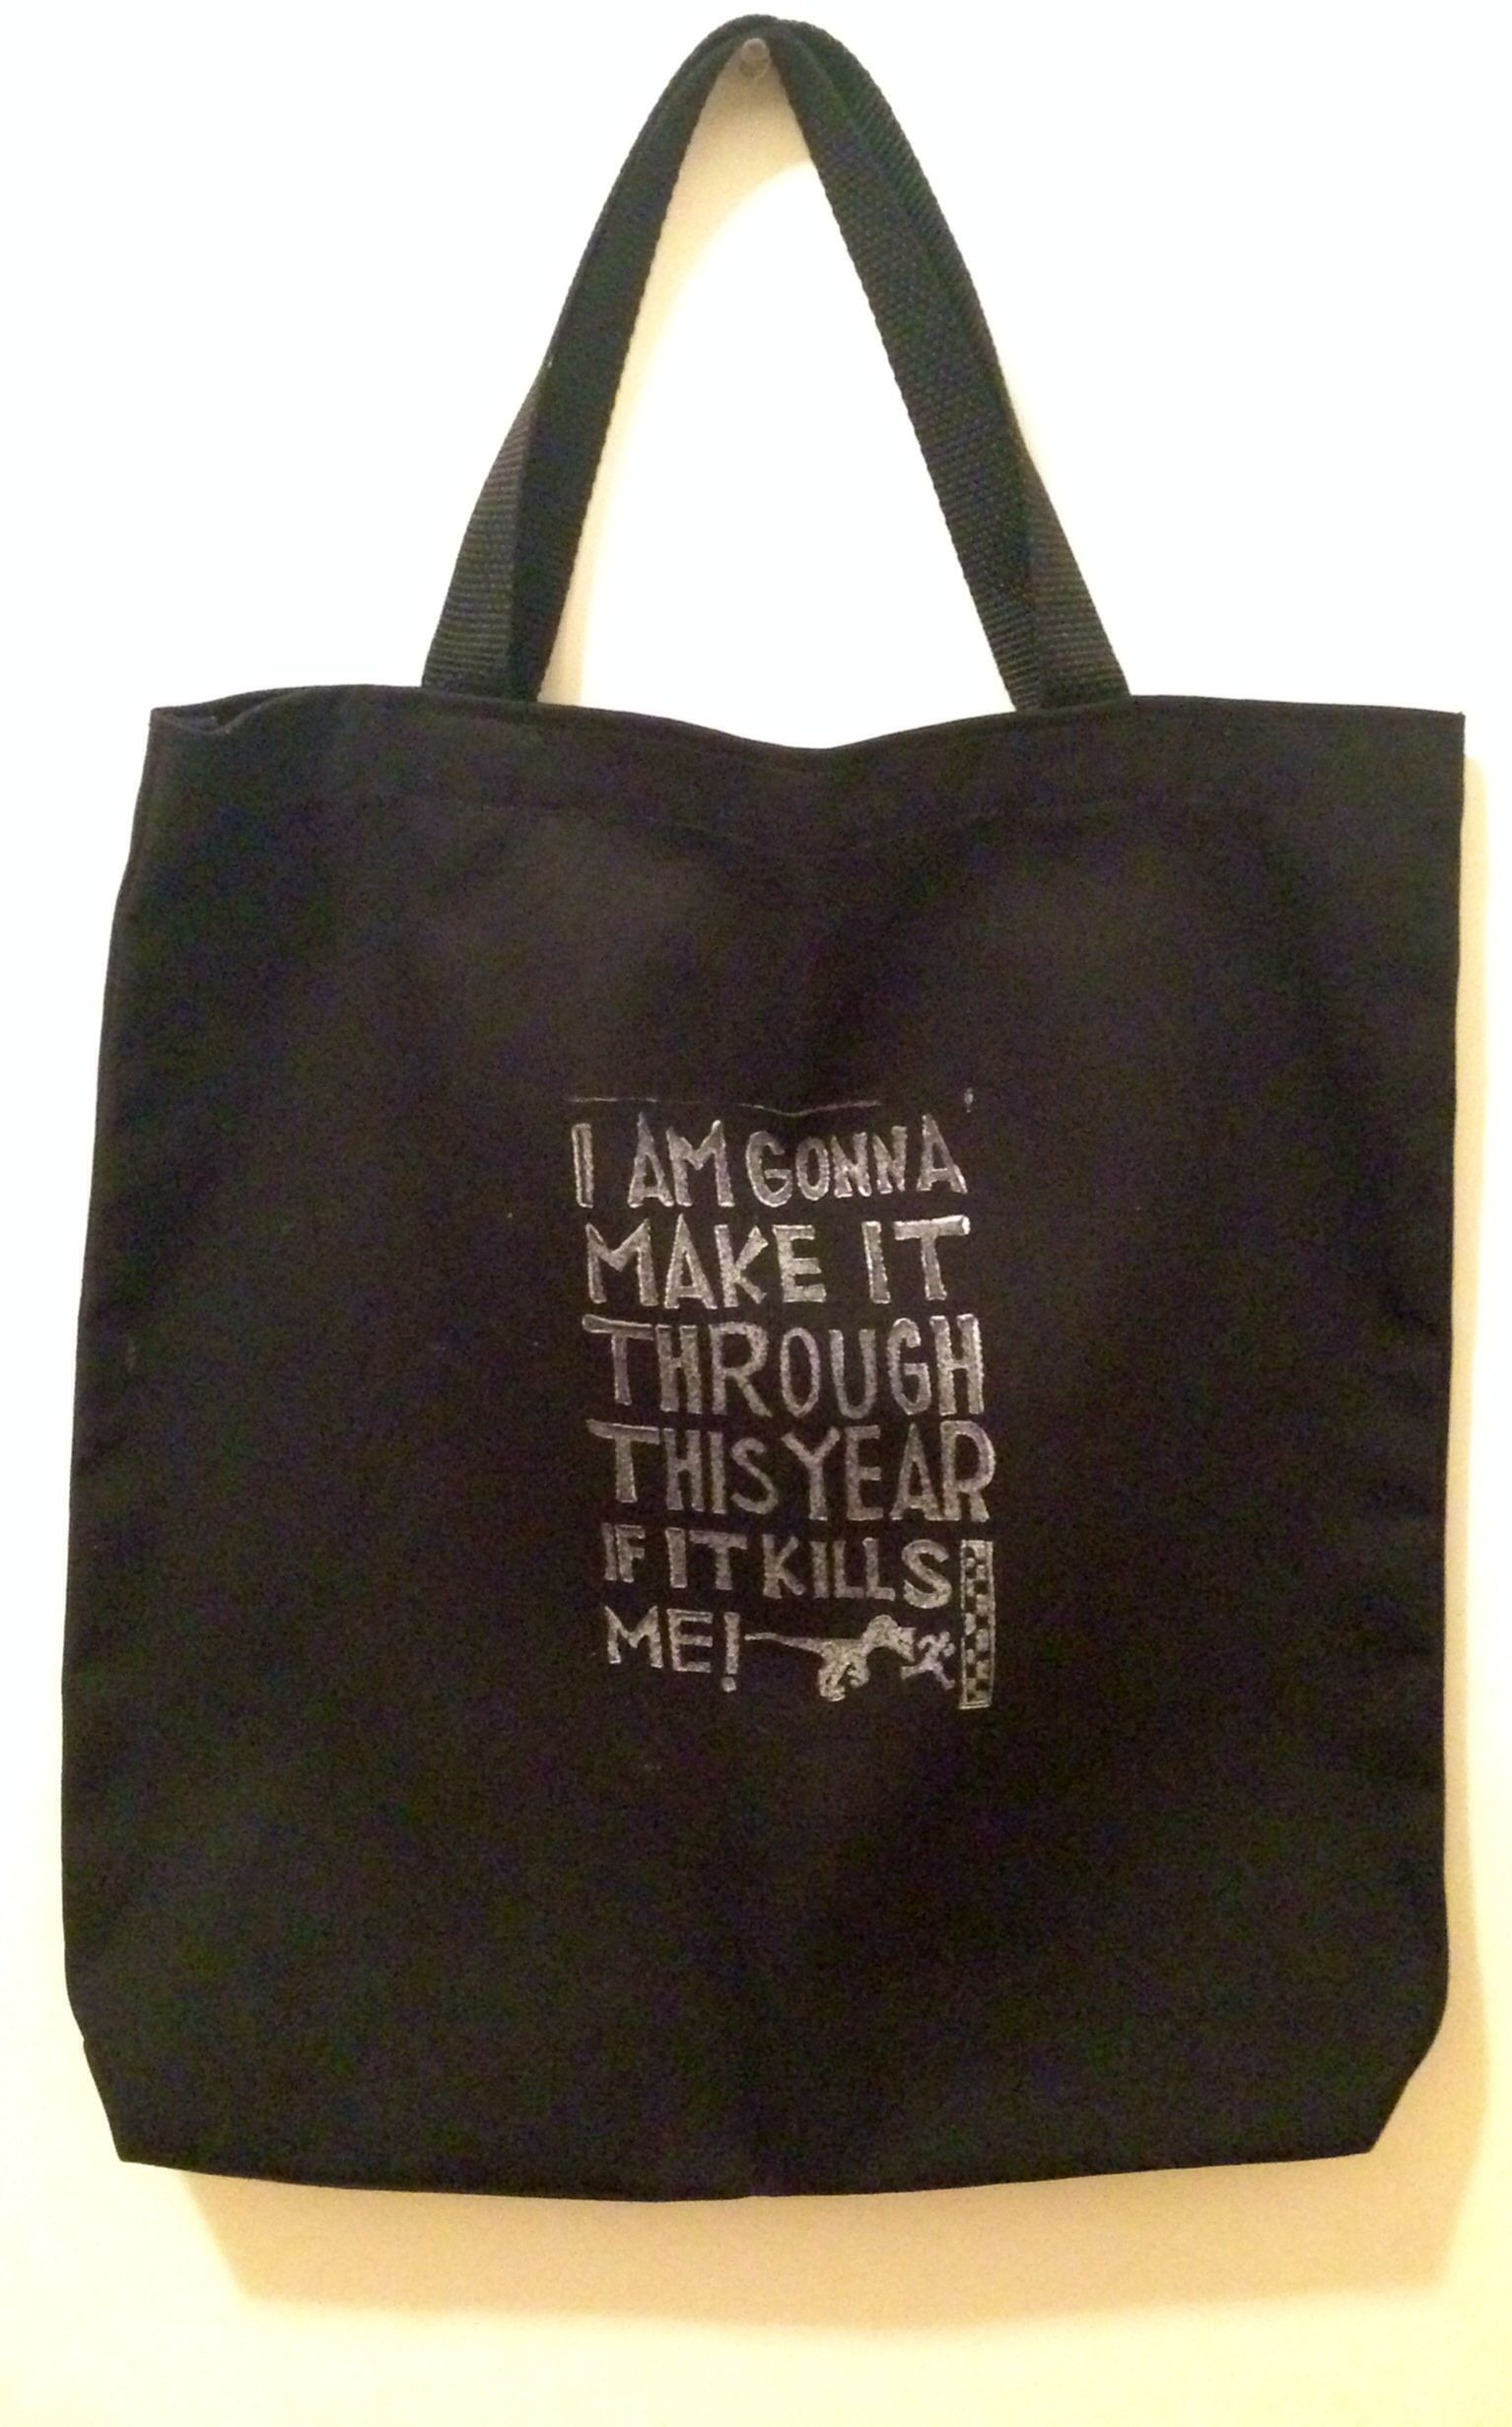 I am gonna make it through this year if it kills me - the tote, song lyrics by the mountain goats